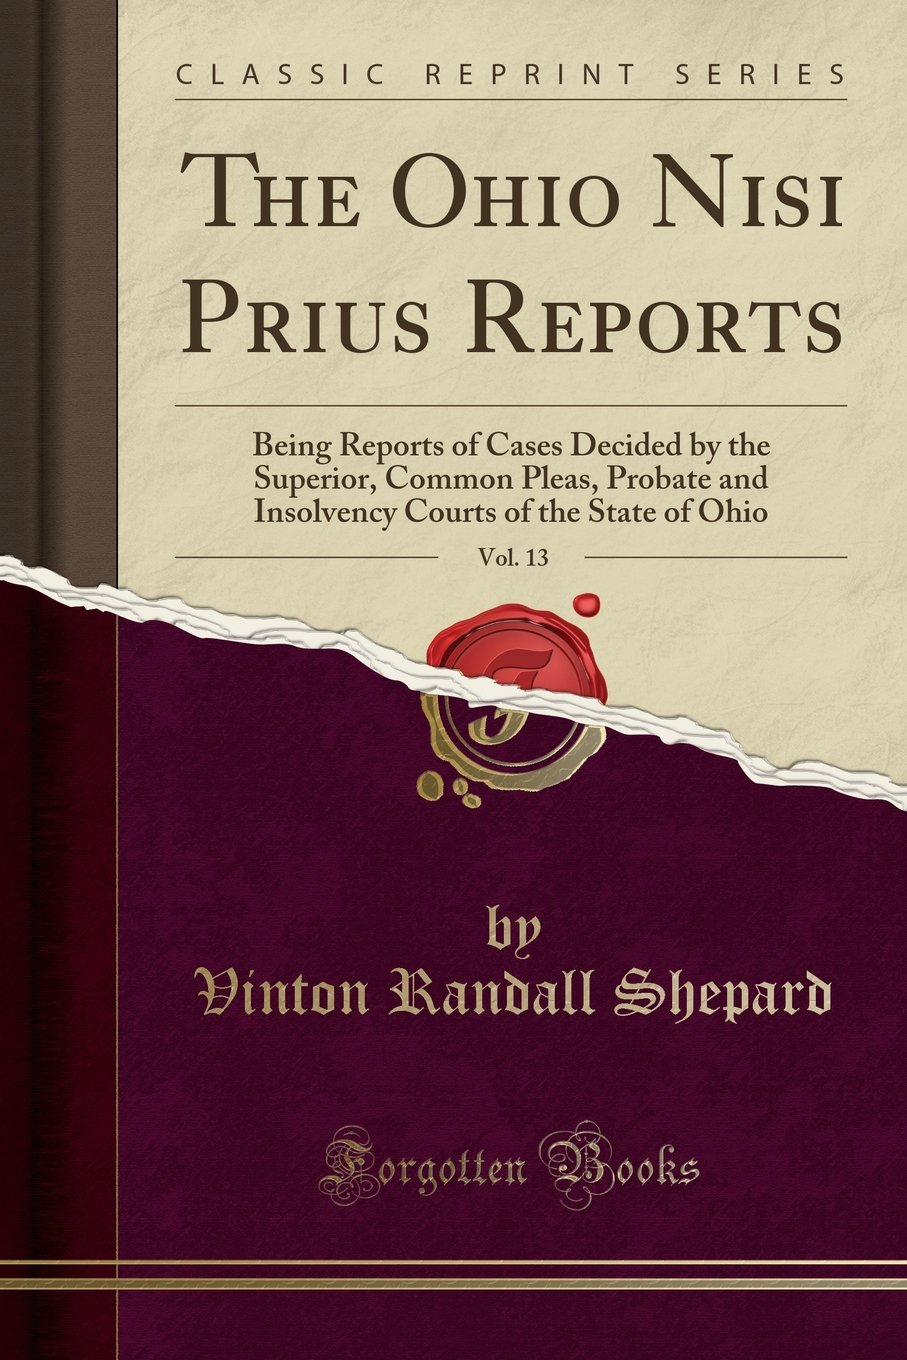 The Ohio Nisi Prius Reports, Vol. 13: Being Reports of Cases Decided by the Superior, Common Pleas, Probate and Insolvency Courts of the State of Ohio (Classic Reprint) pdf